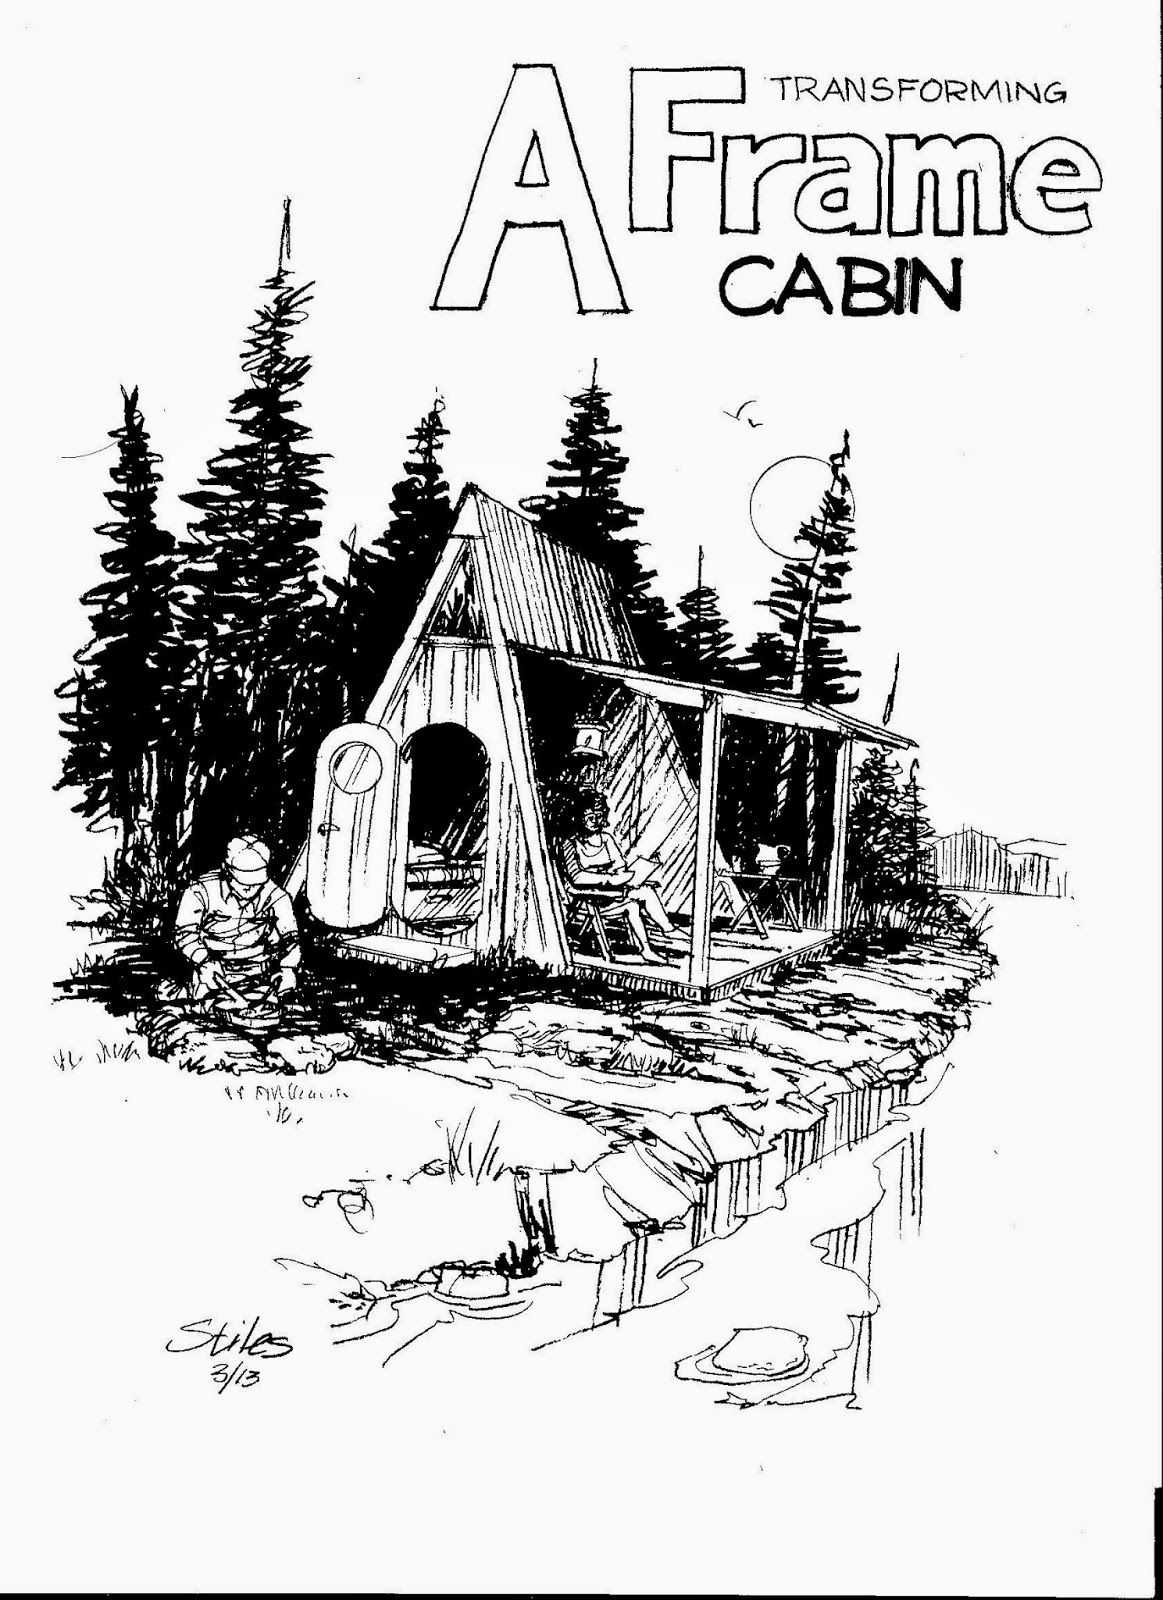 Simplicity simplicity simplicity and woods A frame cabin tiny house wood home